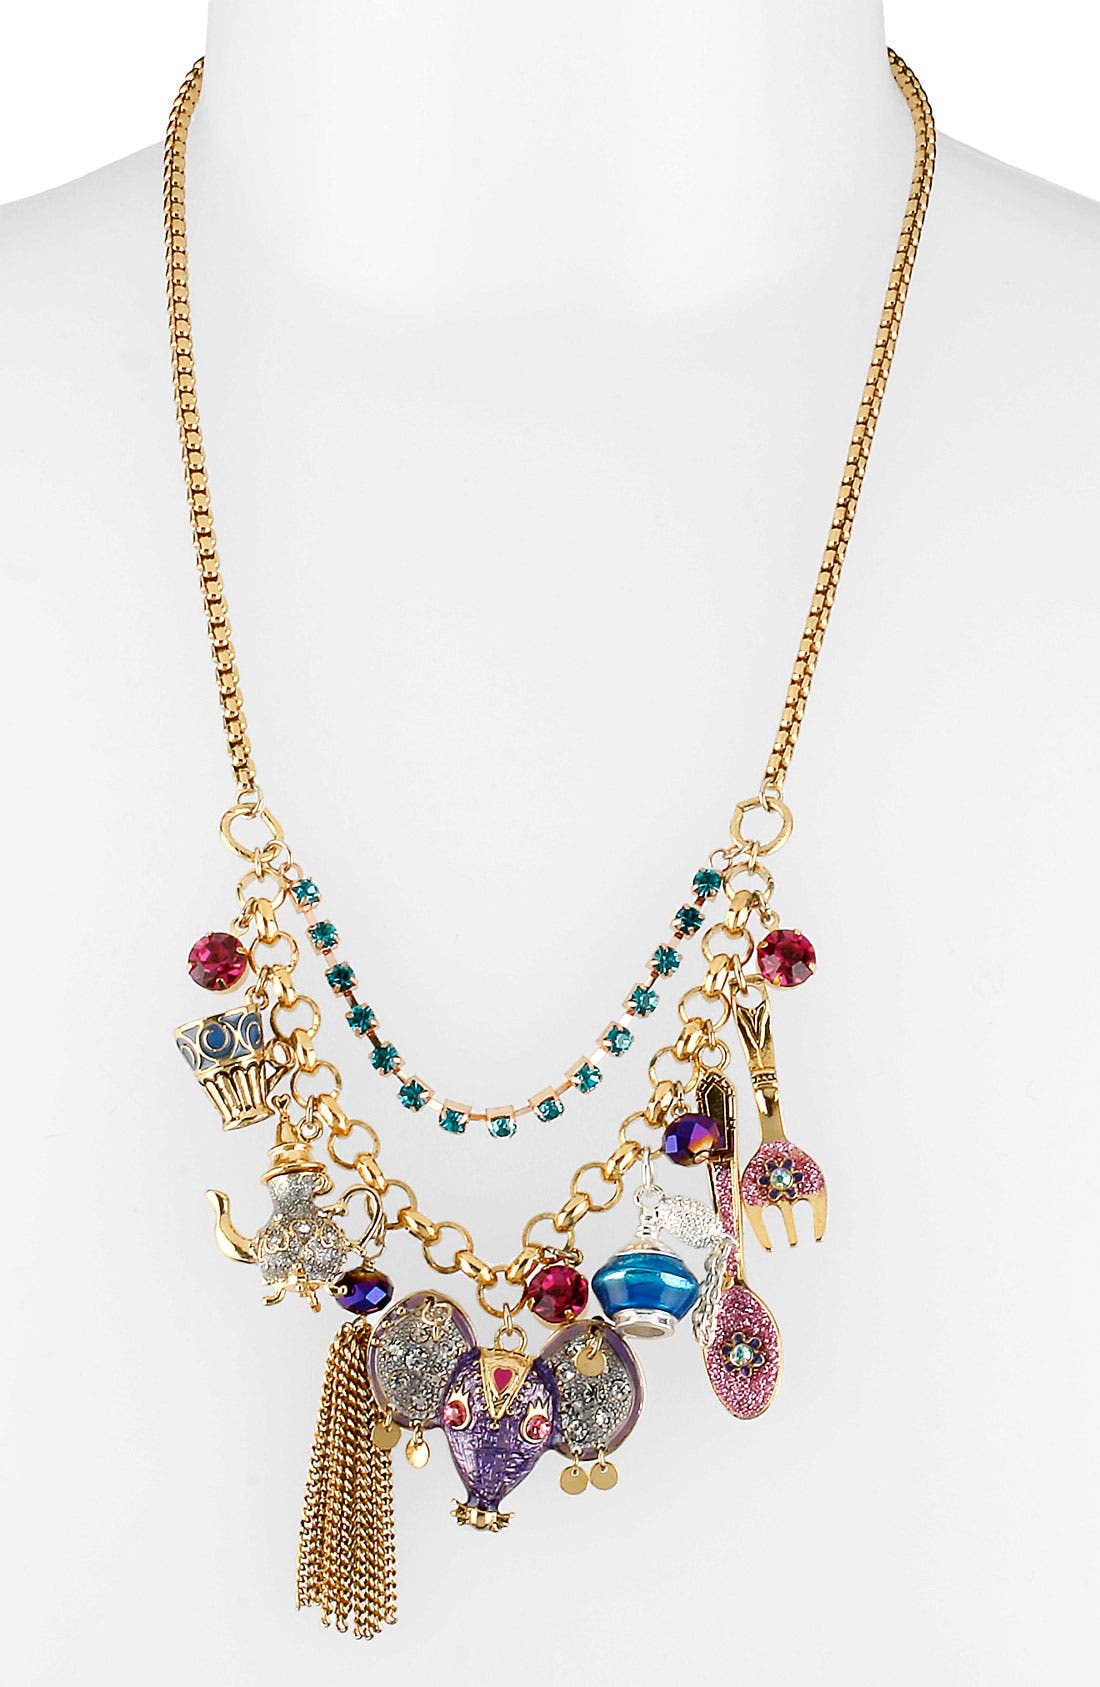 Main Image - Betsey Johnson 'Morocco Adventure' Frontal Necklace